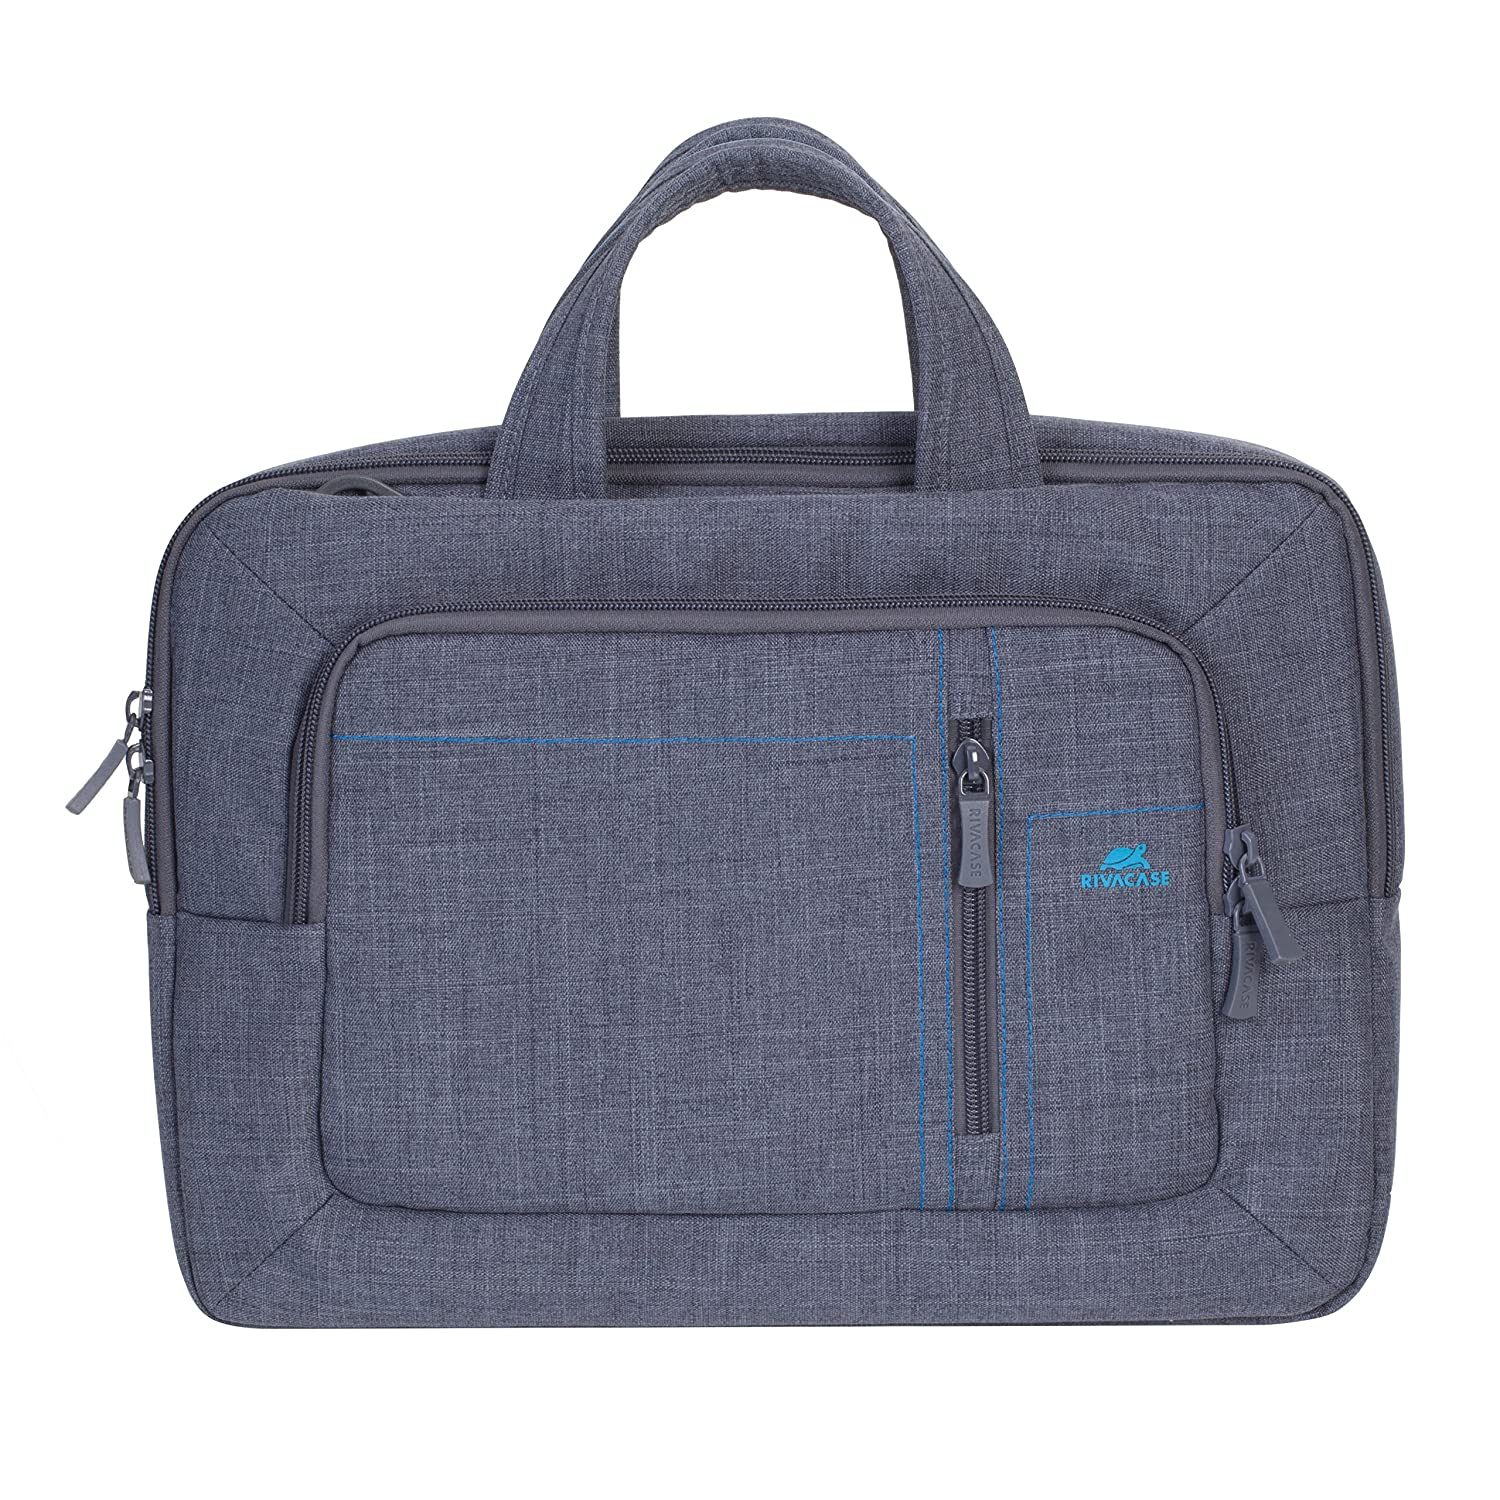 Rivacase Laptop Notebook Netbook Tablet PC Sleeve Carrying Bag Case 7520  Grey  Amazon.co.uk  Computers   Accessories 26066be380